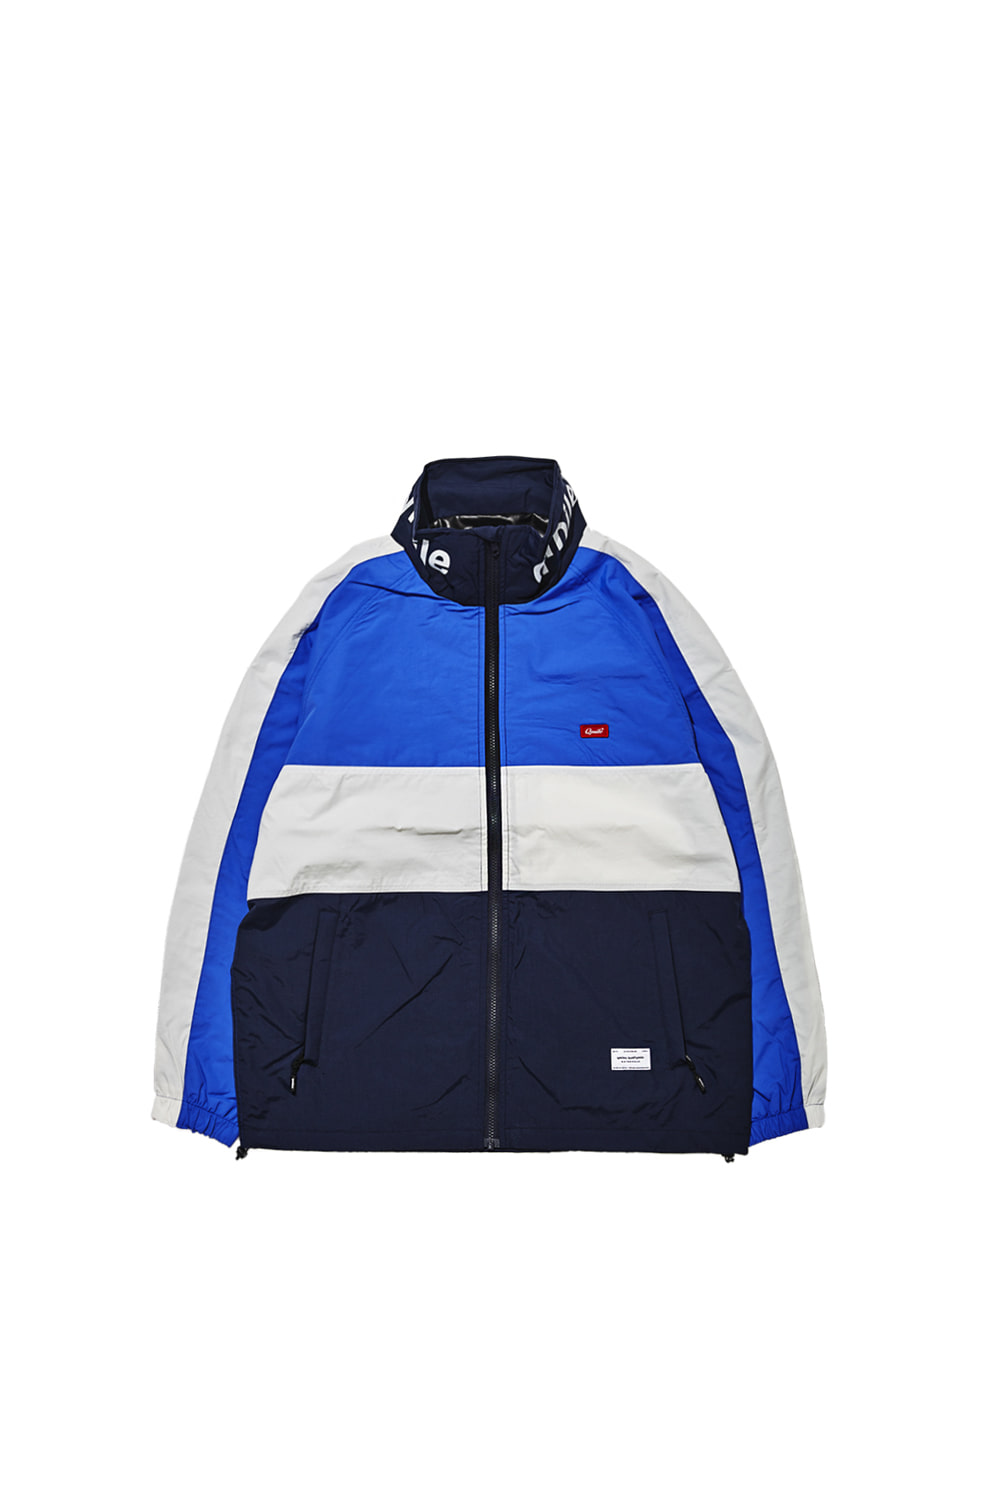 TRACK TOP JACKET | BLUE/NAVY